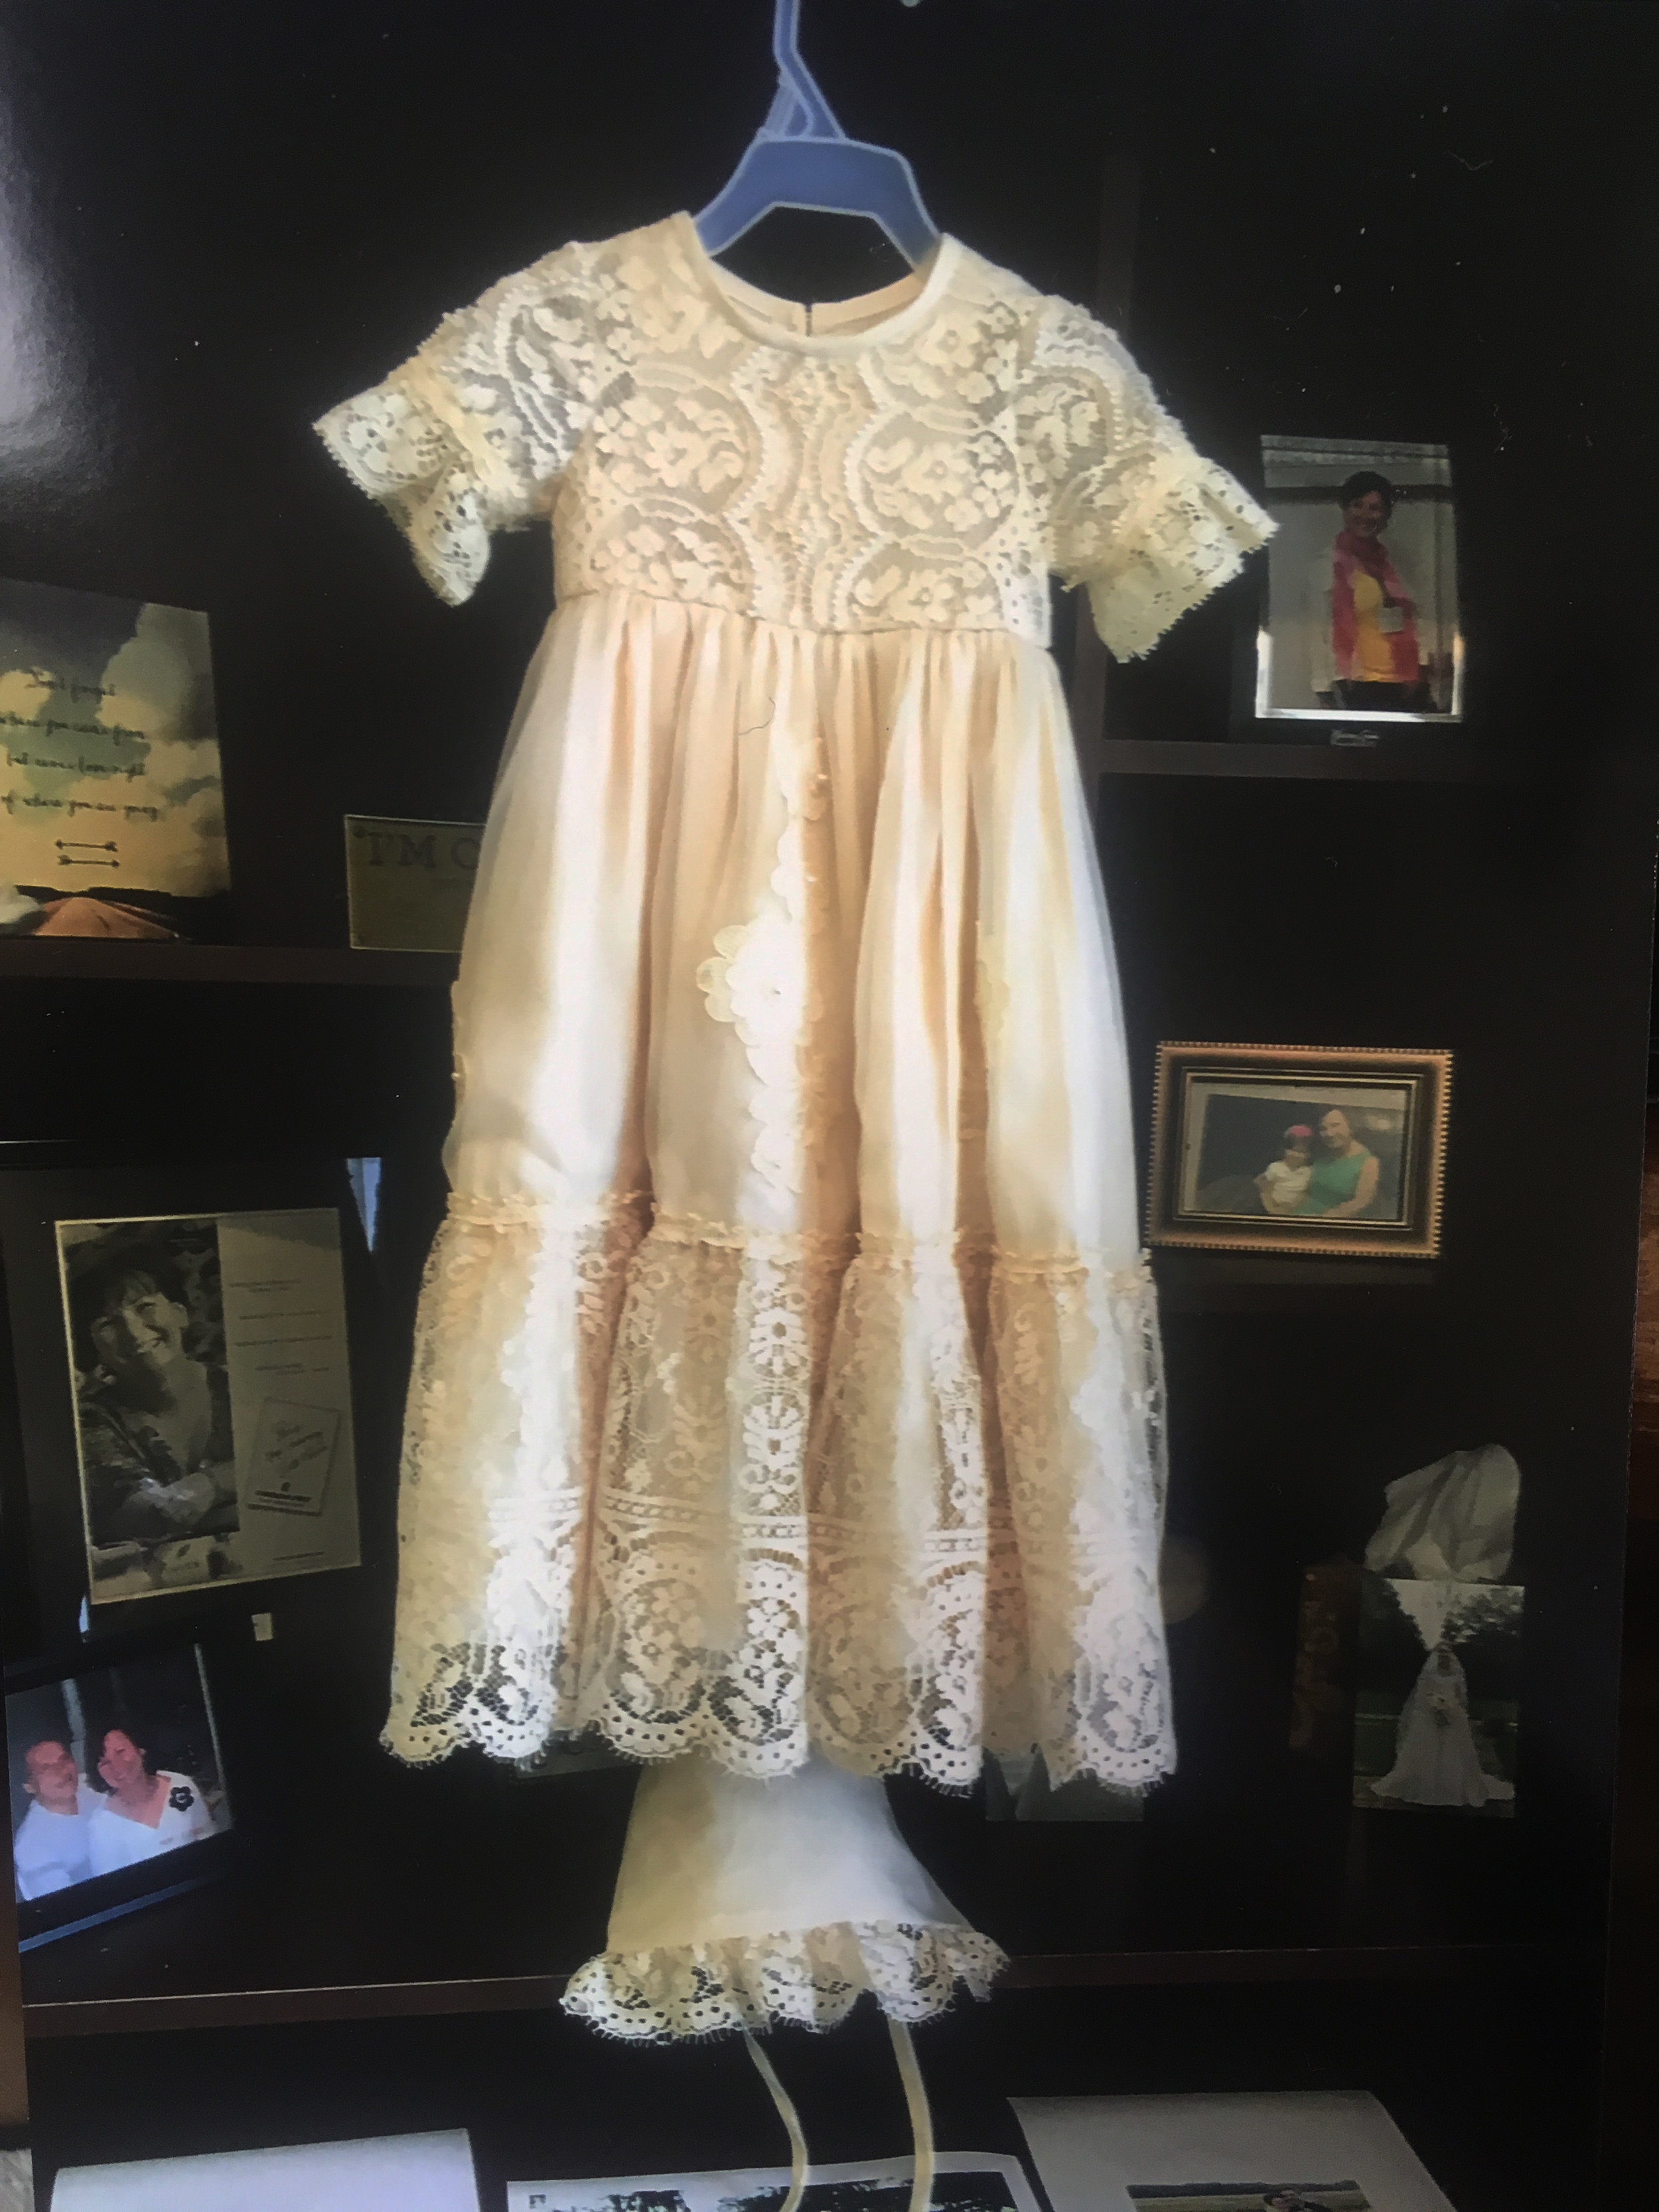 From a Grandmother's wedding gown to a christening gown made by Paula.